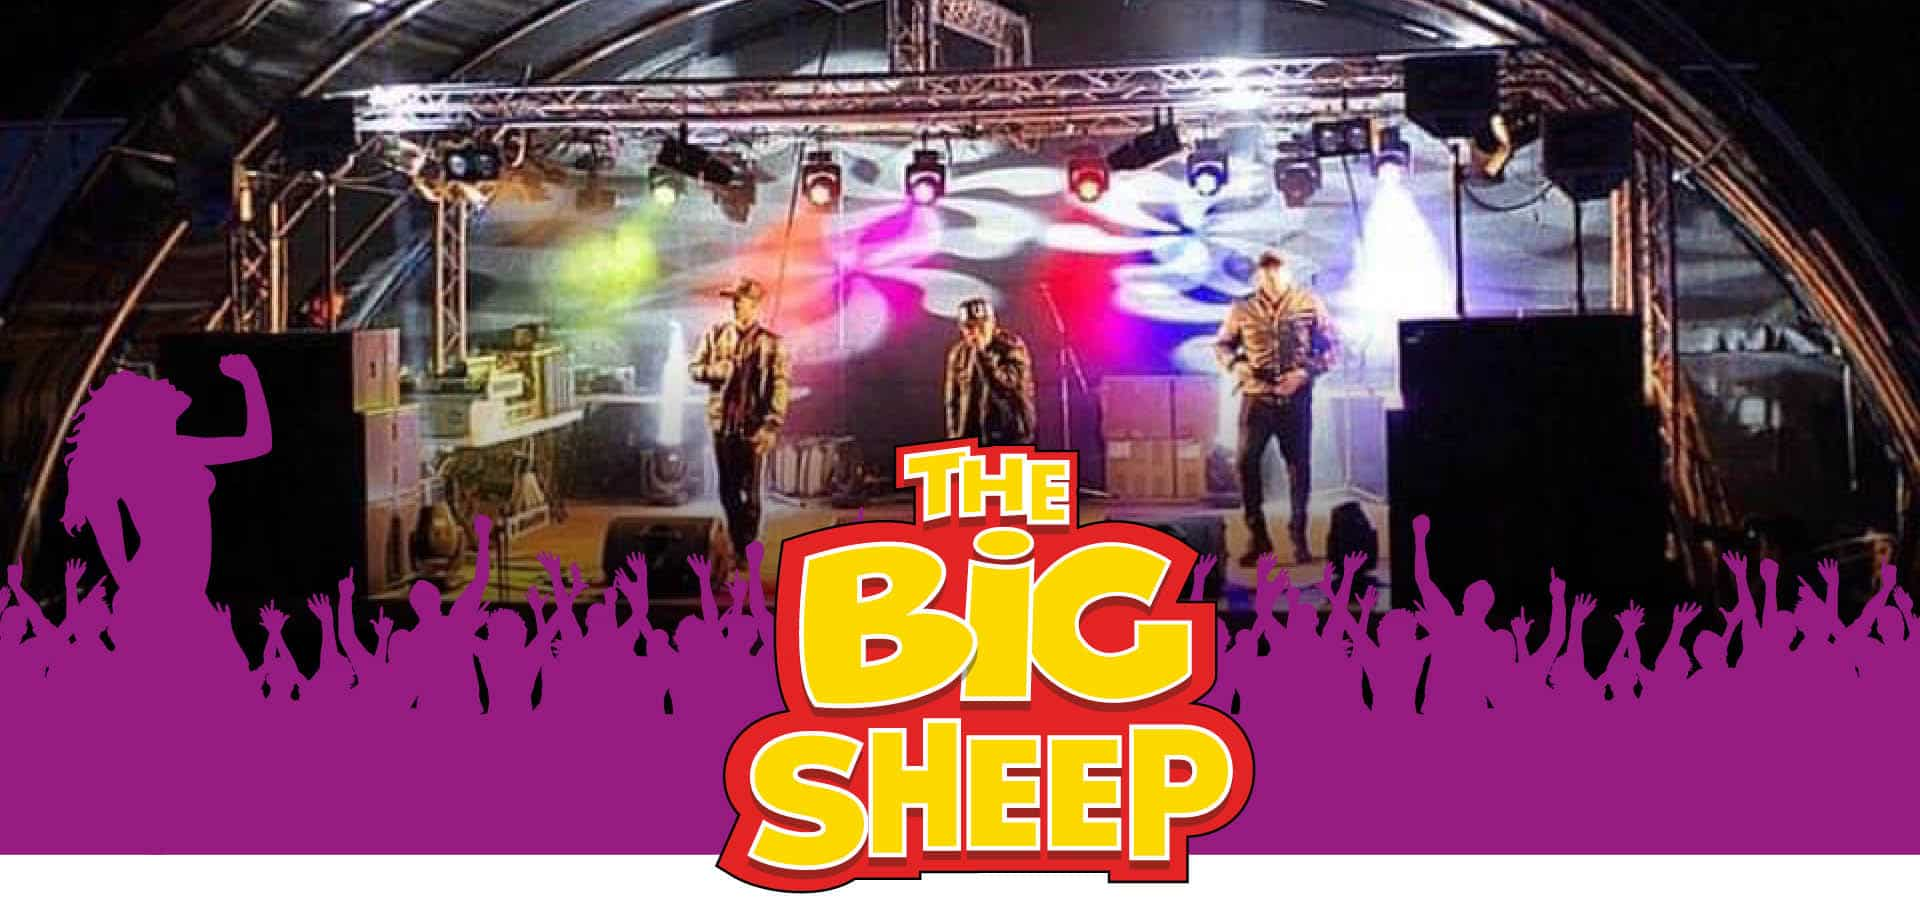 The Big Sheep Events and Gigs